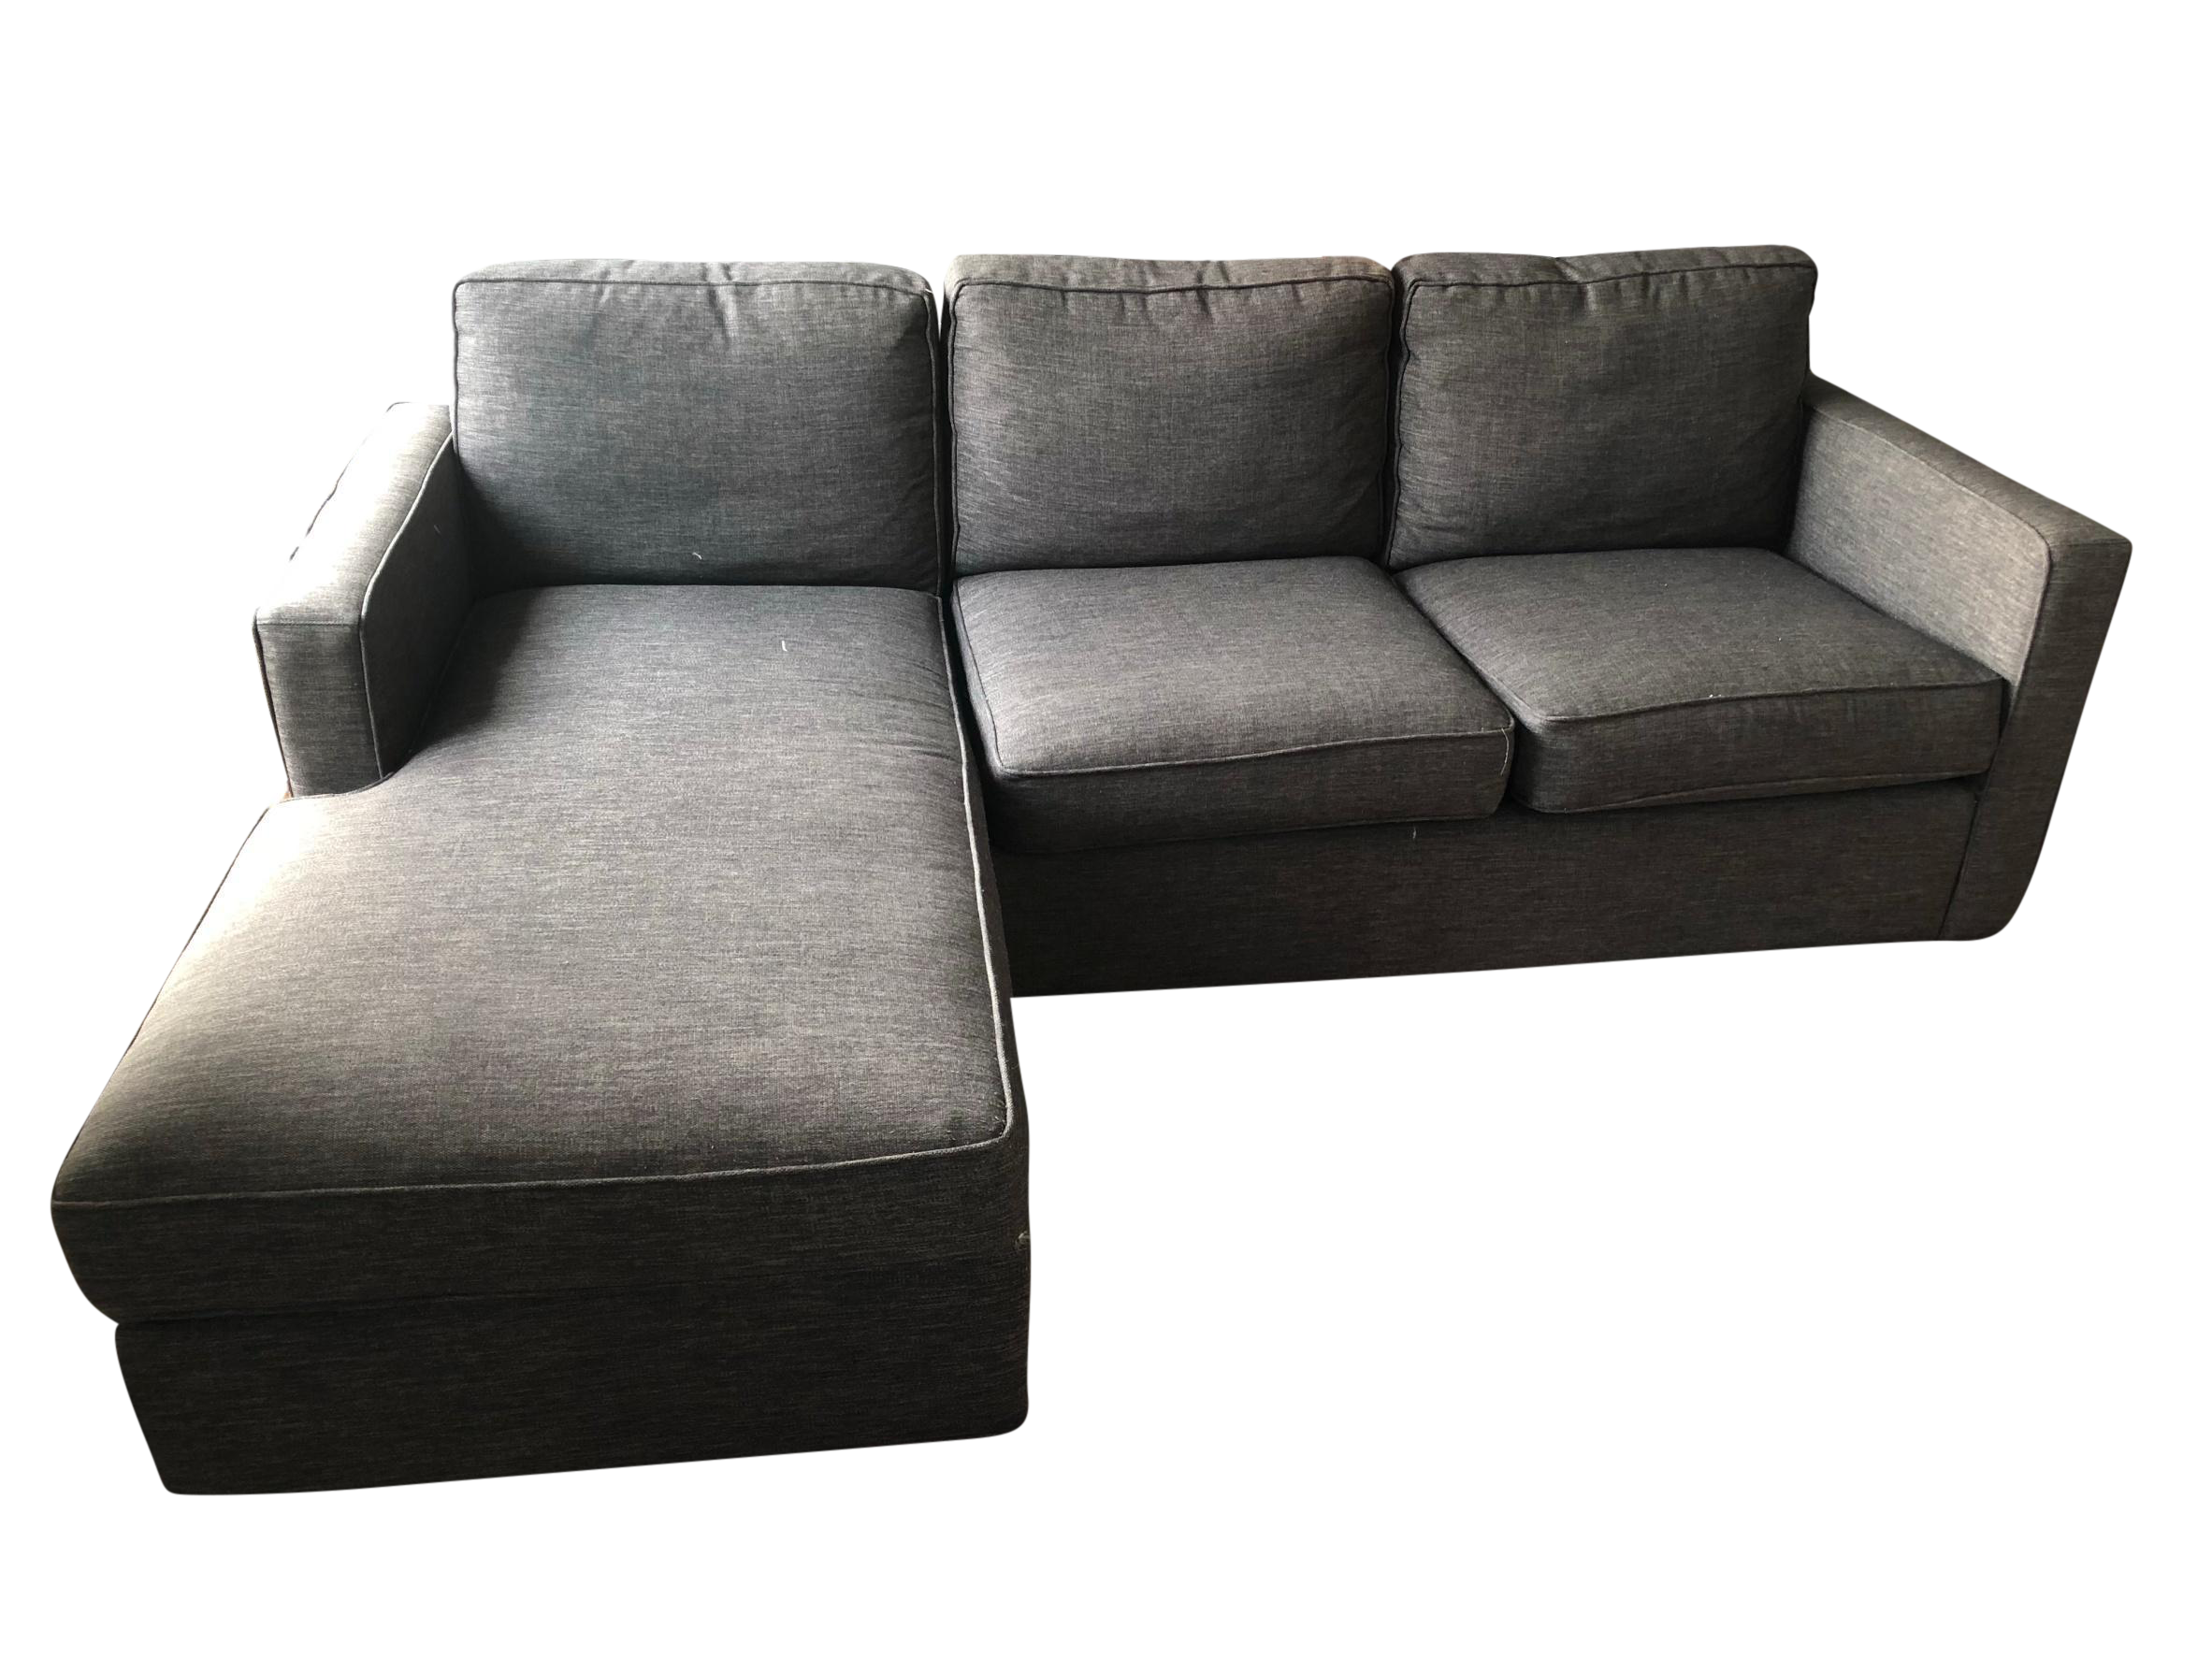 Crate barrel lounge ii petite 2 piece sectional sofa chairish